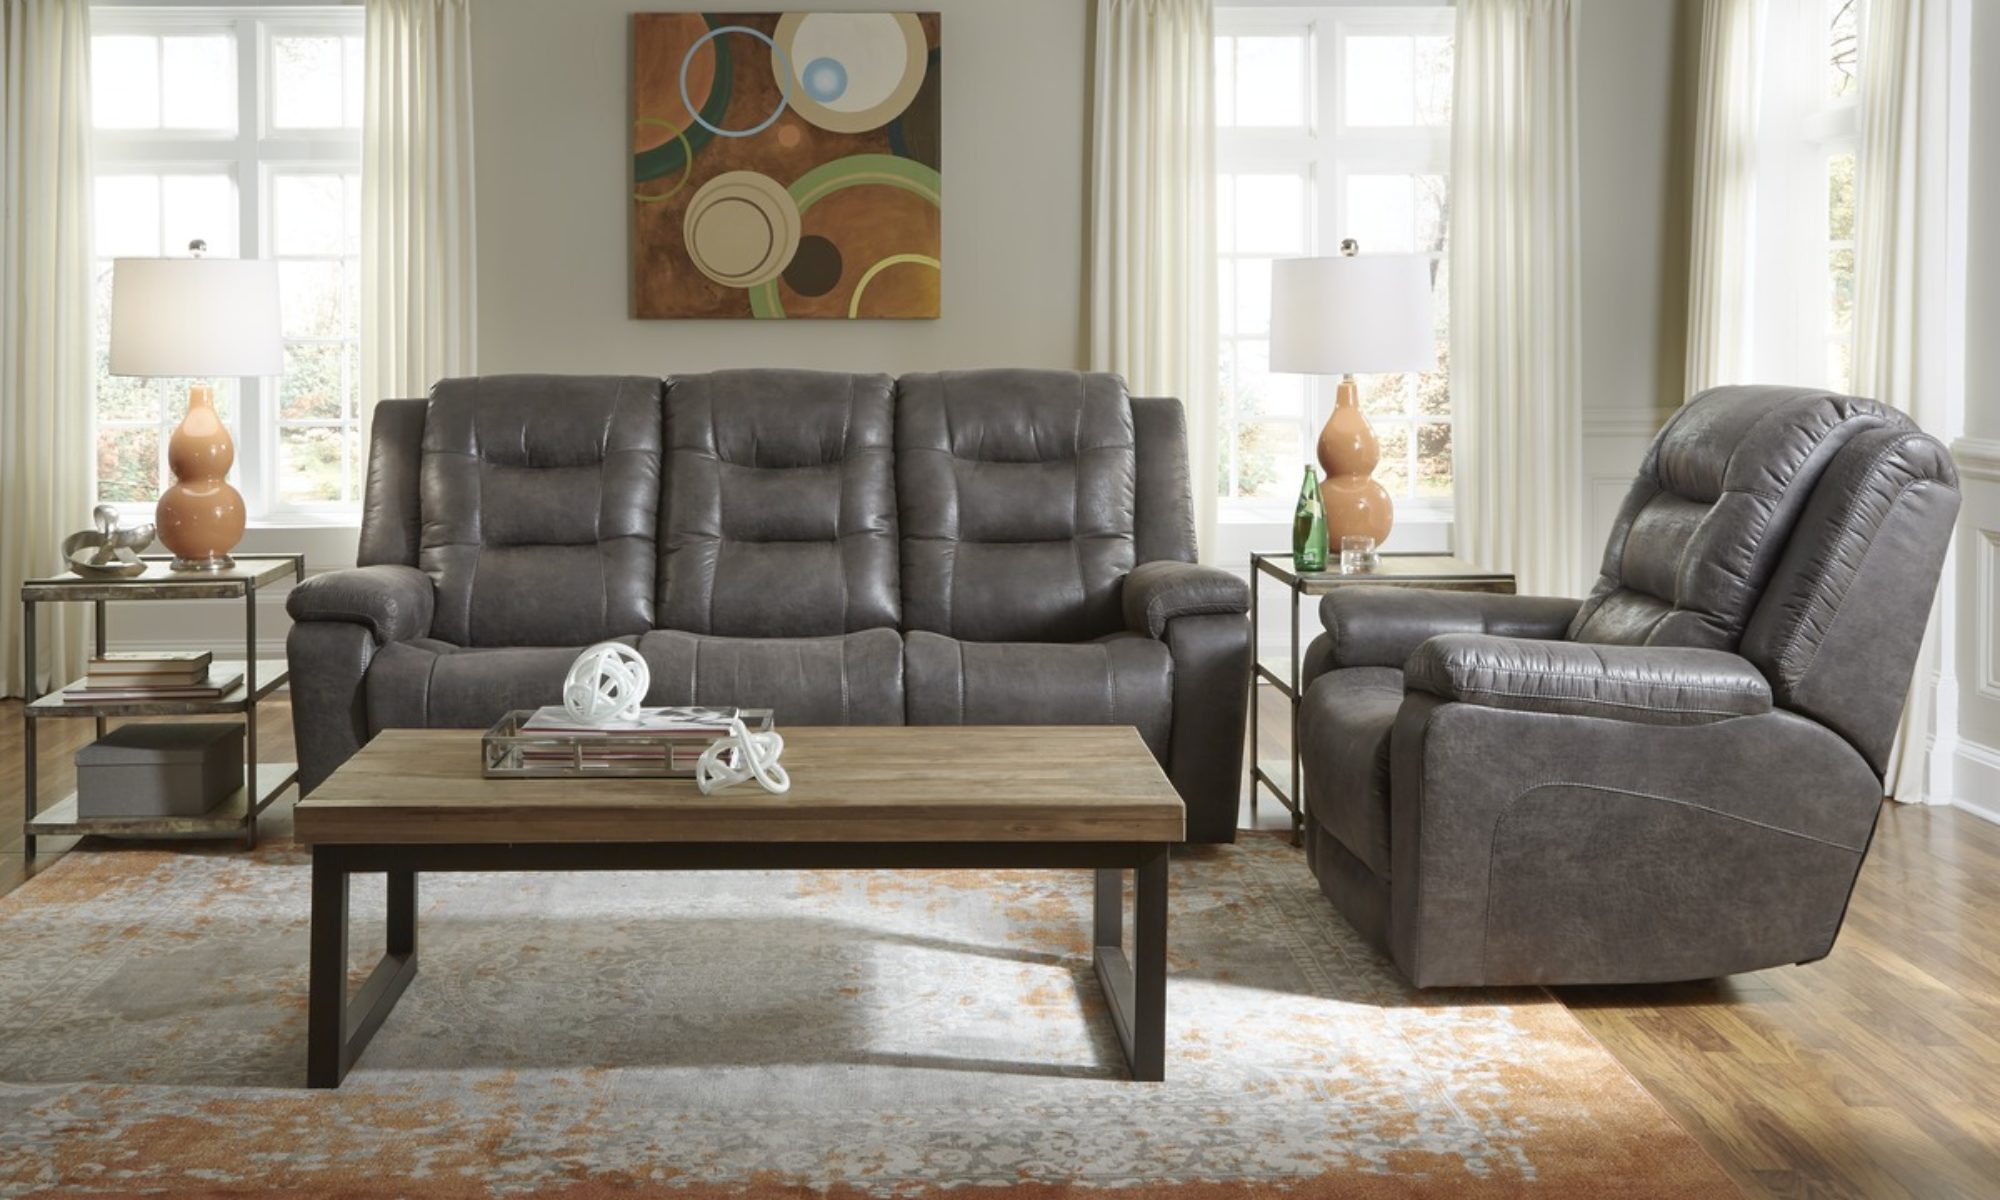 Palliser furniture in arizona